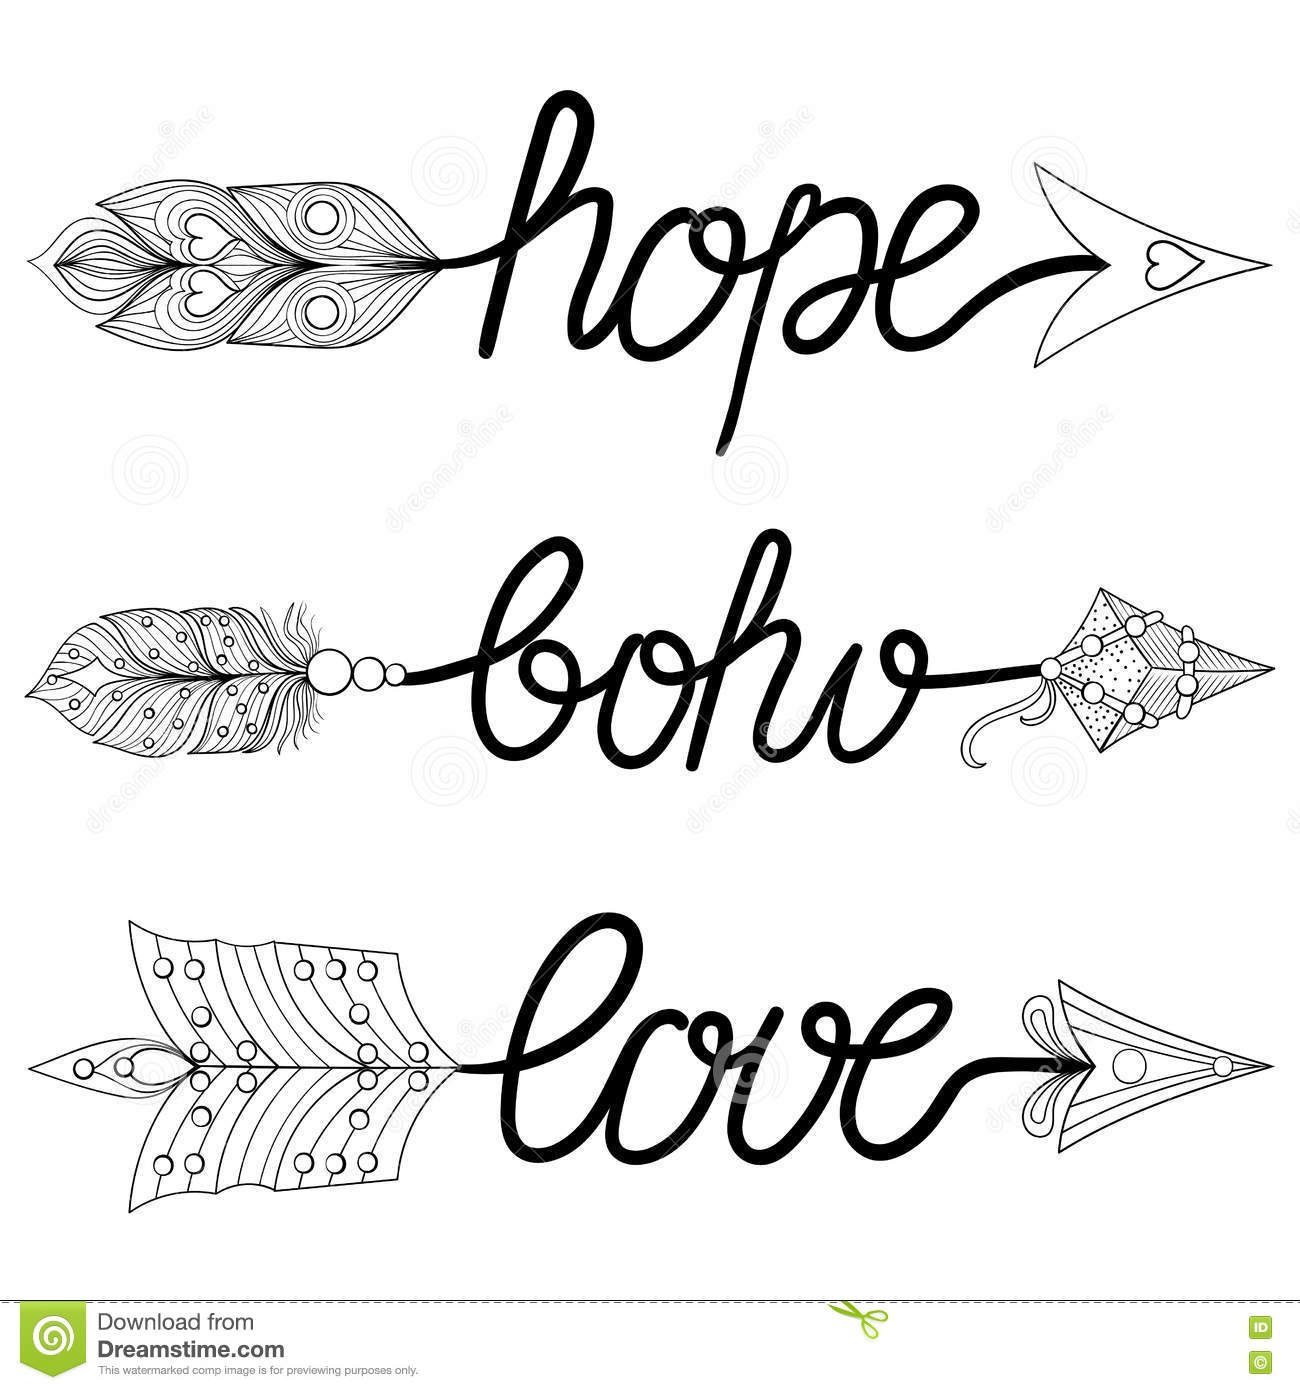 Boho Love Hope Arrows Hand Drawn Signs With Feathers Decorative